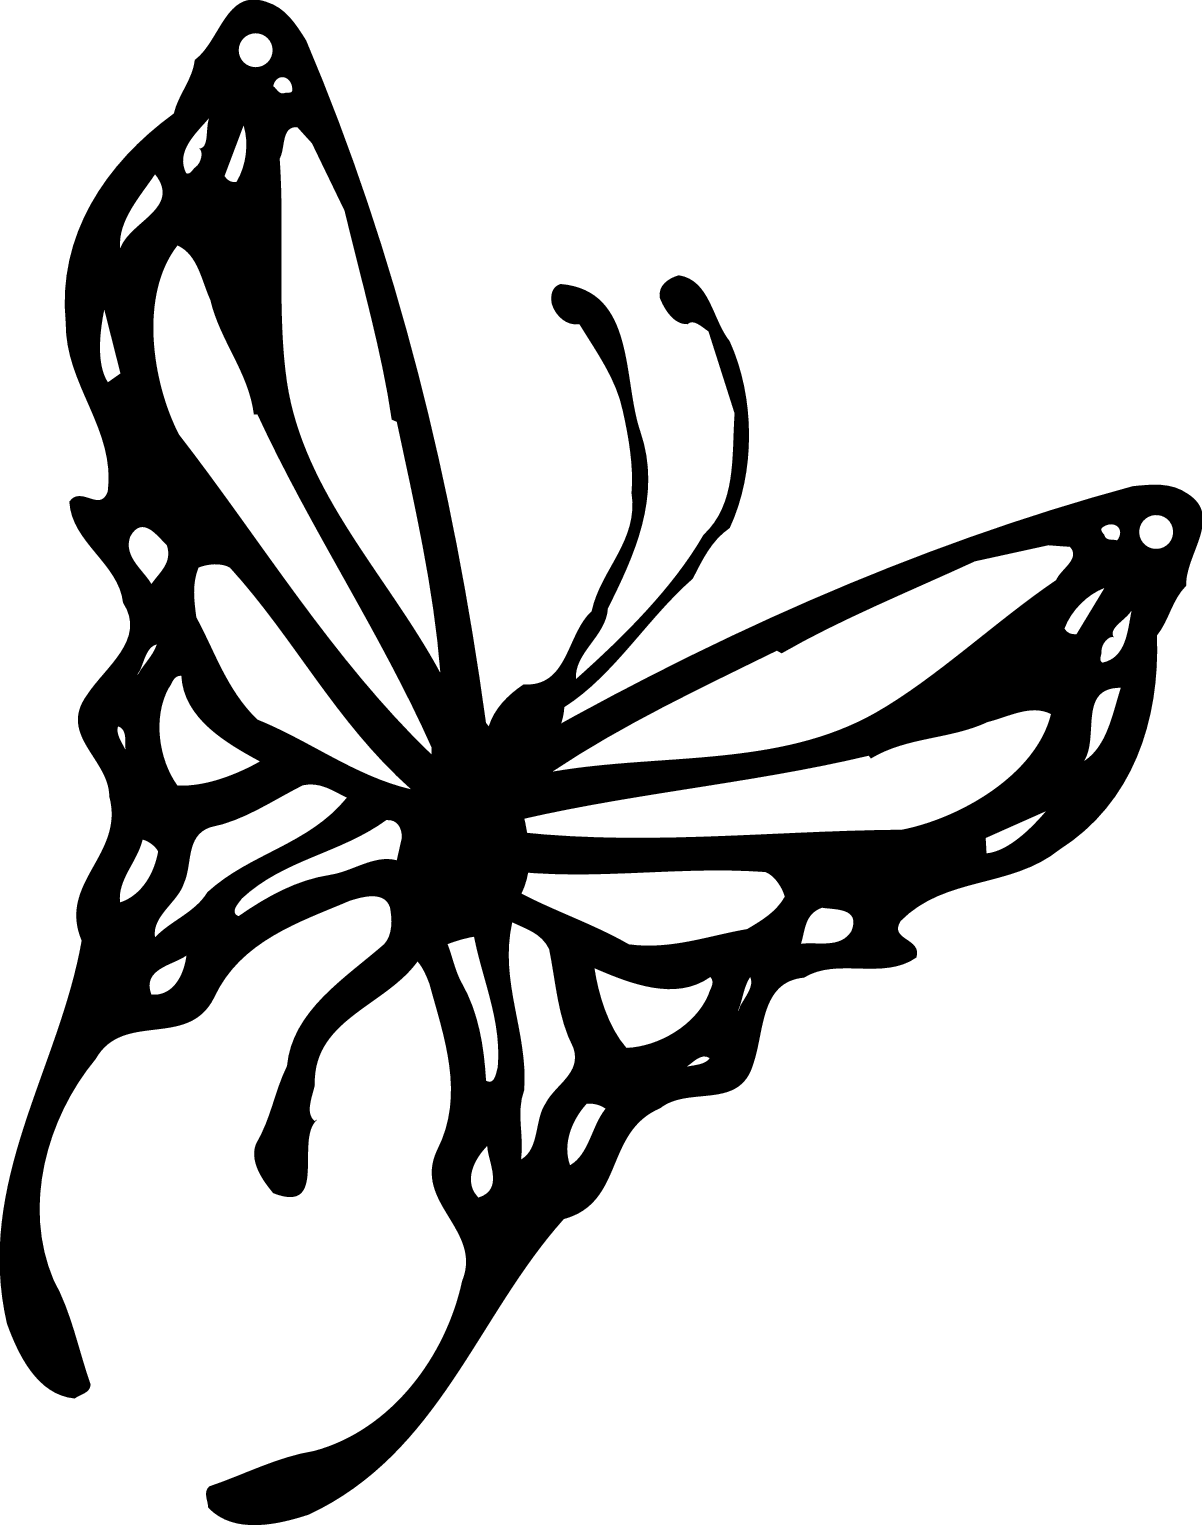 Butterfly Clip Art Black And White | Clipart Panda - Free ...